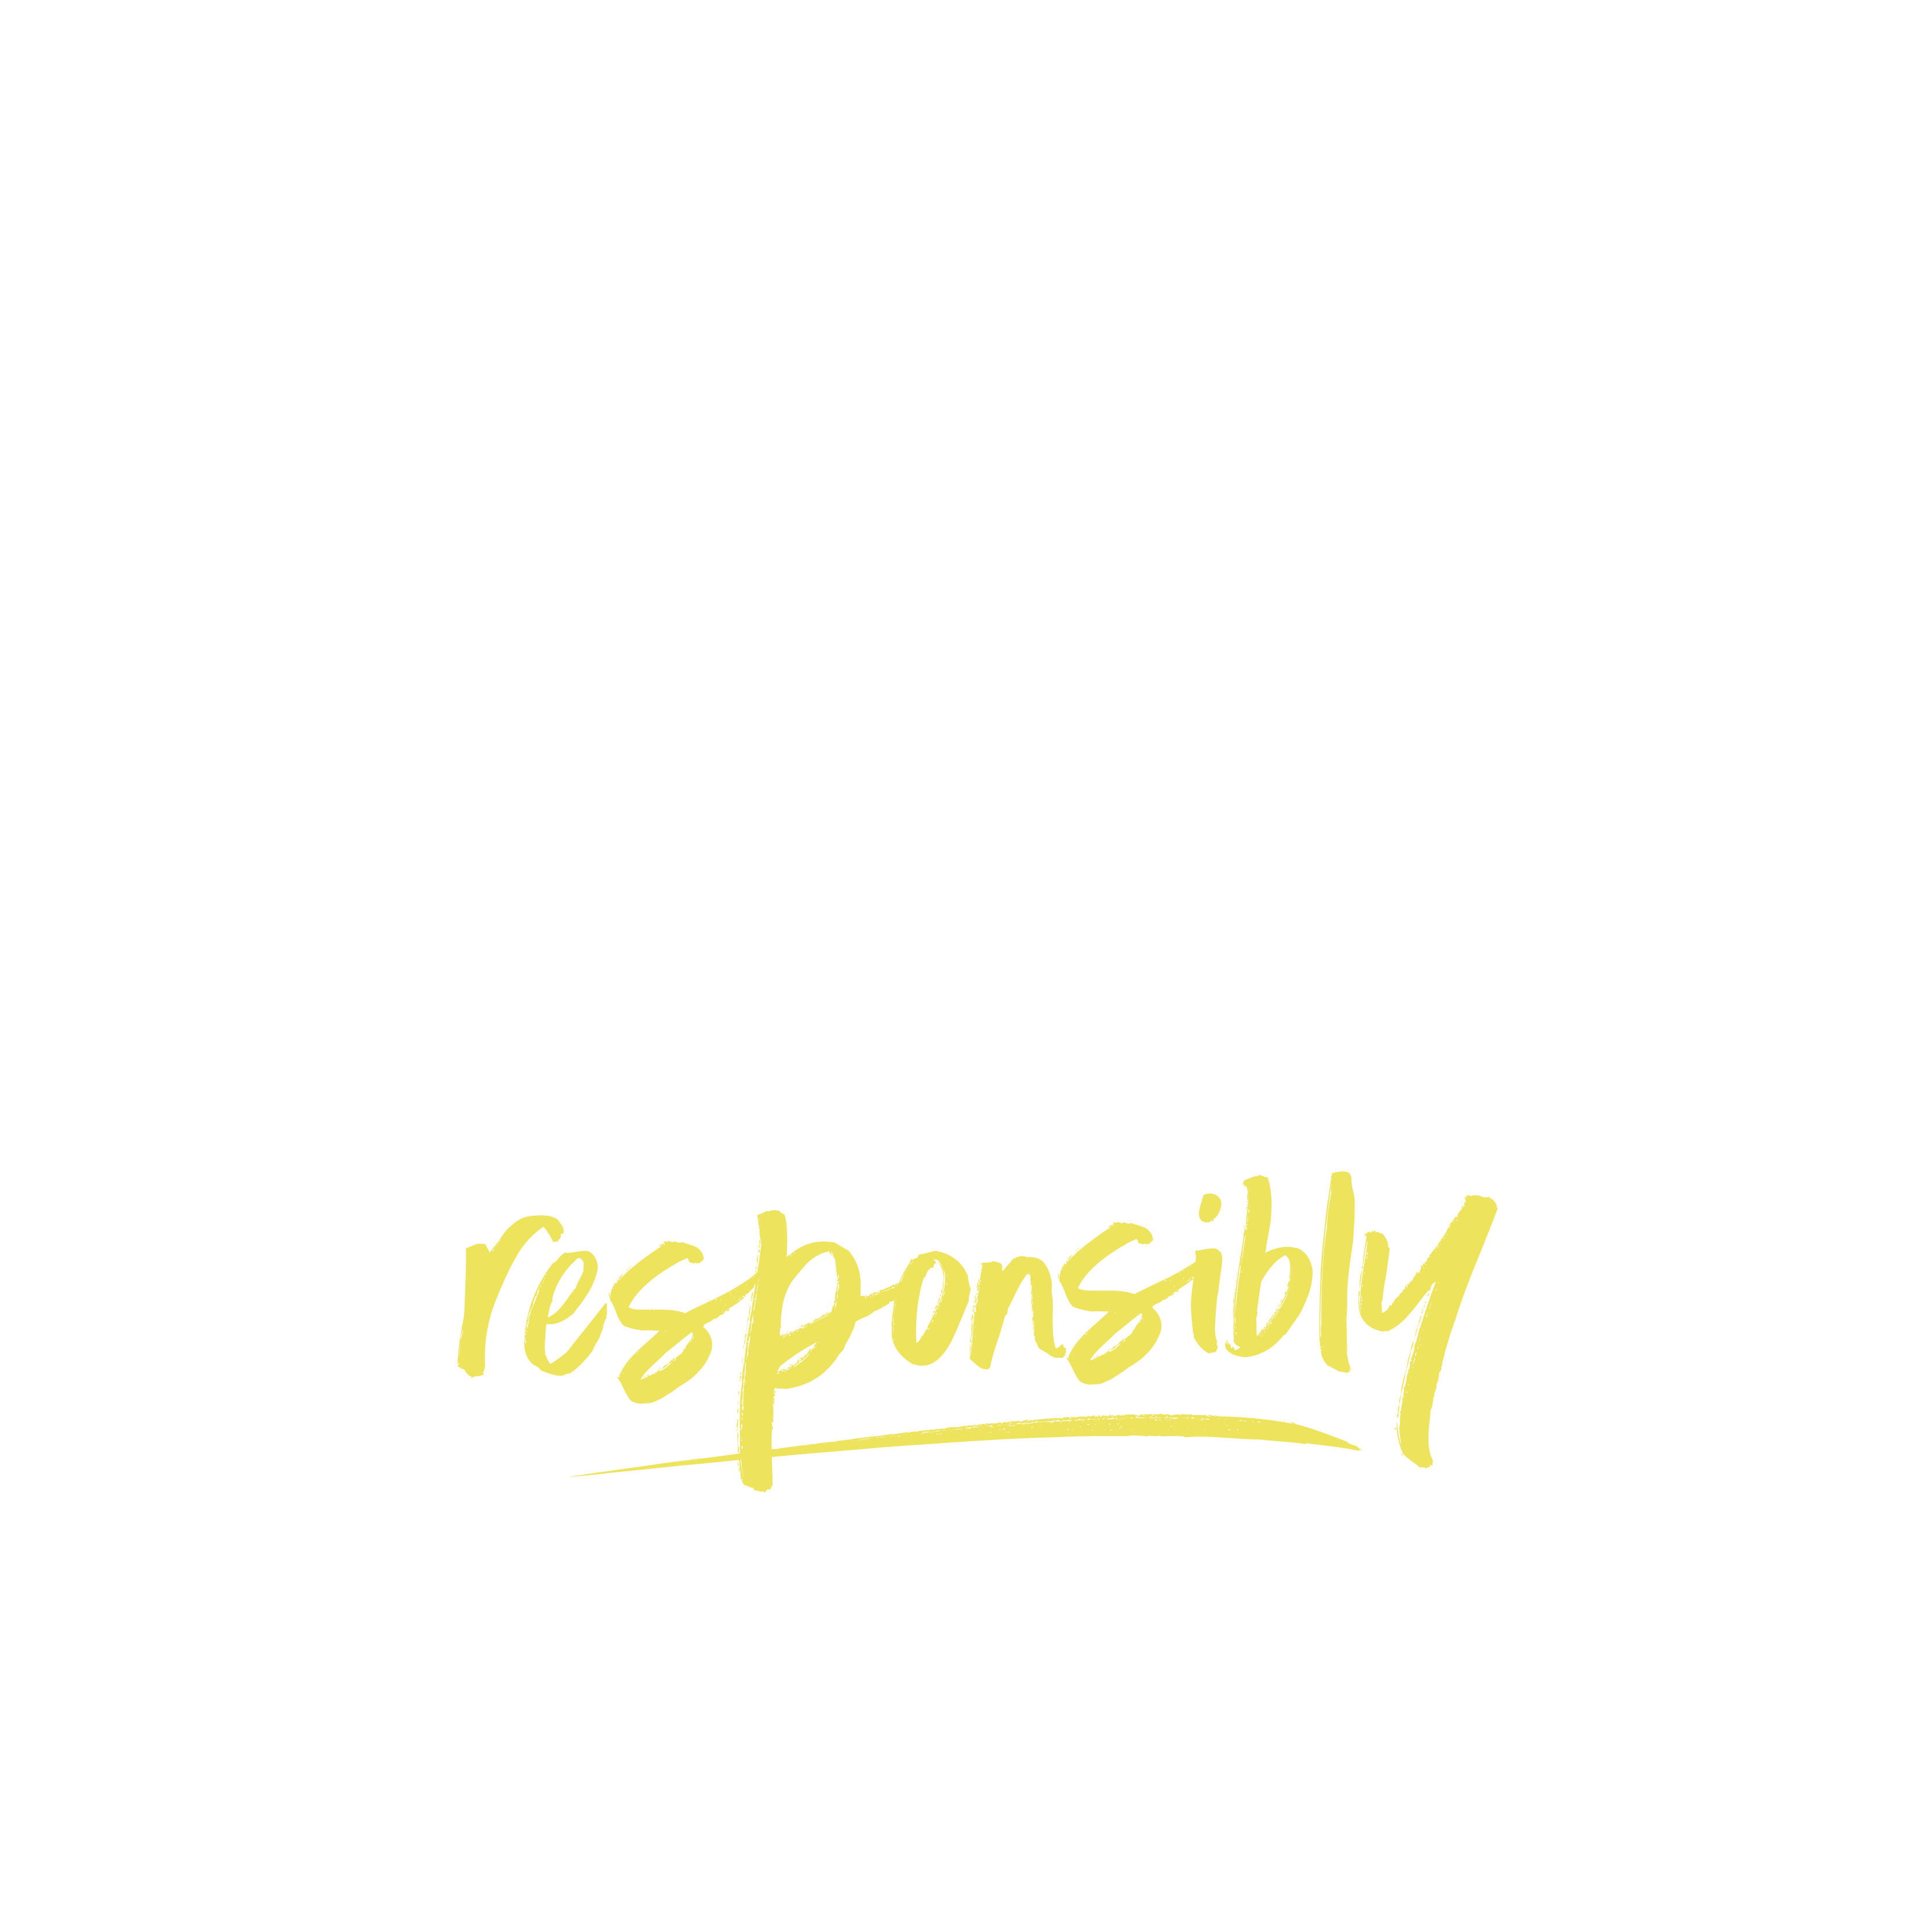 Escape the Everyday Responsibly logo in white